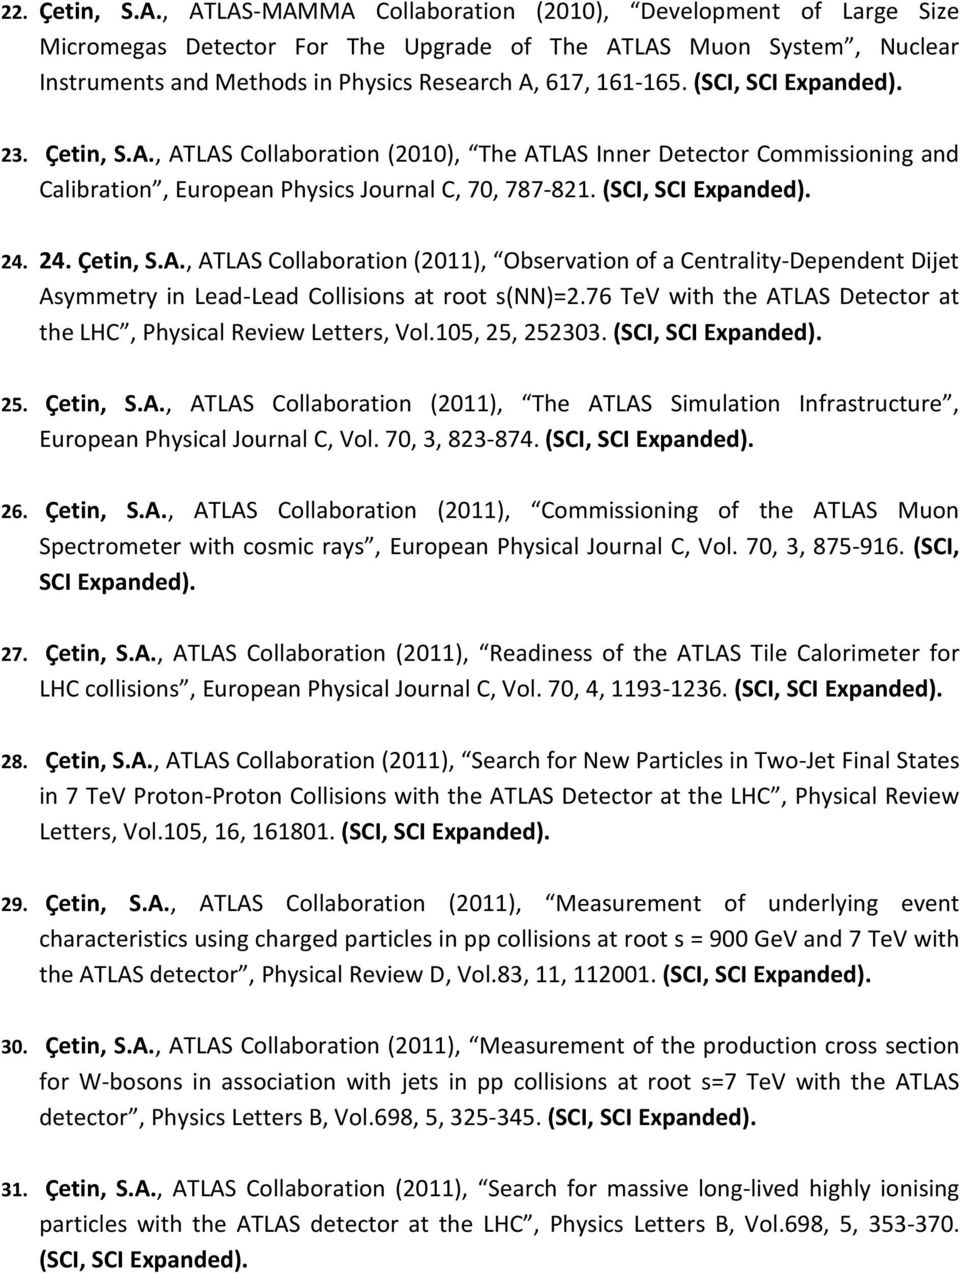 (SCI, SCI Expanded). 23. Çetin, S.A., ATLAS Collaboration (2010), The ATLAS Inner Detector Commissioning and Calibration, European Physics Journal C, 70, 787-821. (SCI, SCI Expanded). 24. 24. Çetin, S.A., ATLAS Collaboration (2011), Observation of a Centrality-Dependent Dijet Asymmetry in Lead-Lead Collisions at root s(nn)=2.